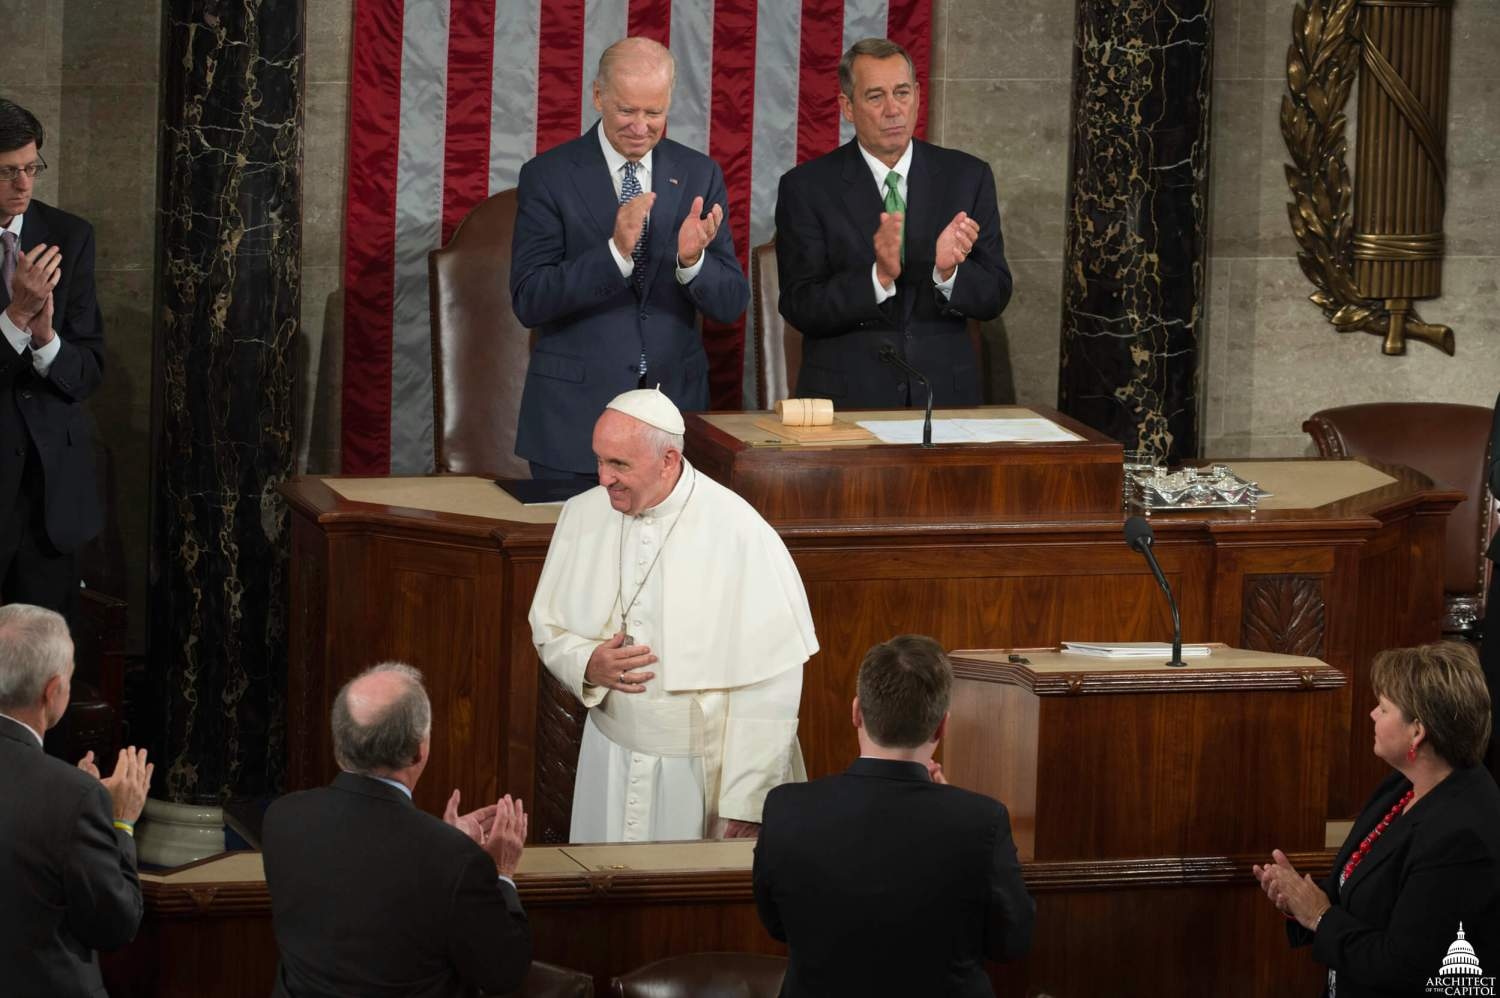 pope_francis_visits_the_united_states_capitol_22153720701